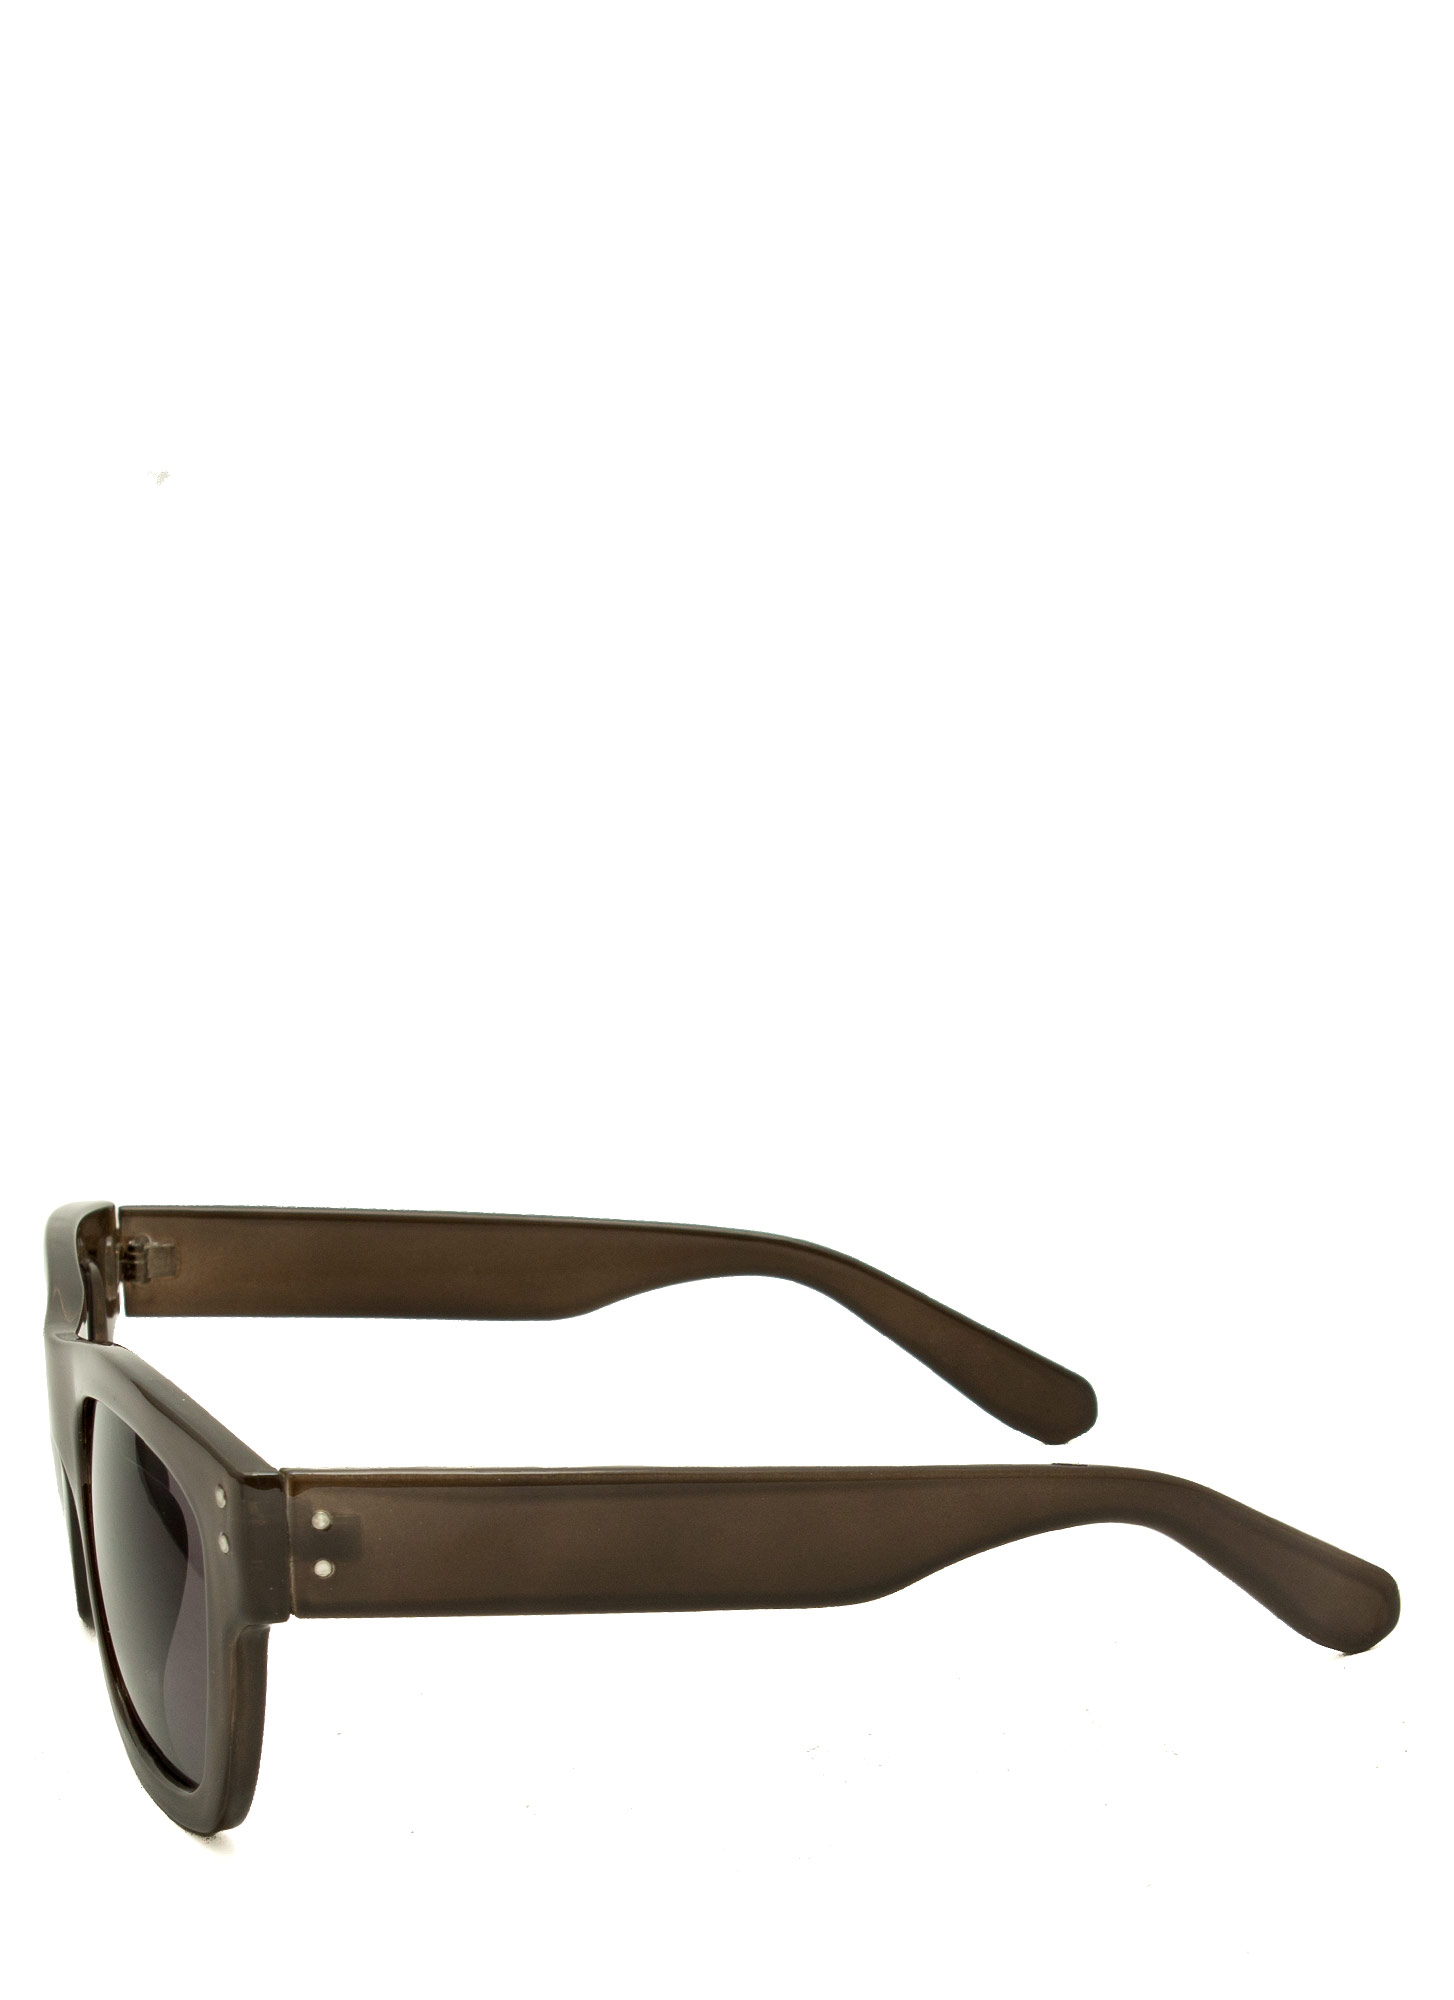 Retro Square Sunglasses GREY